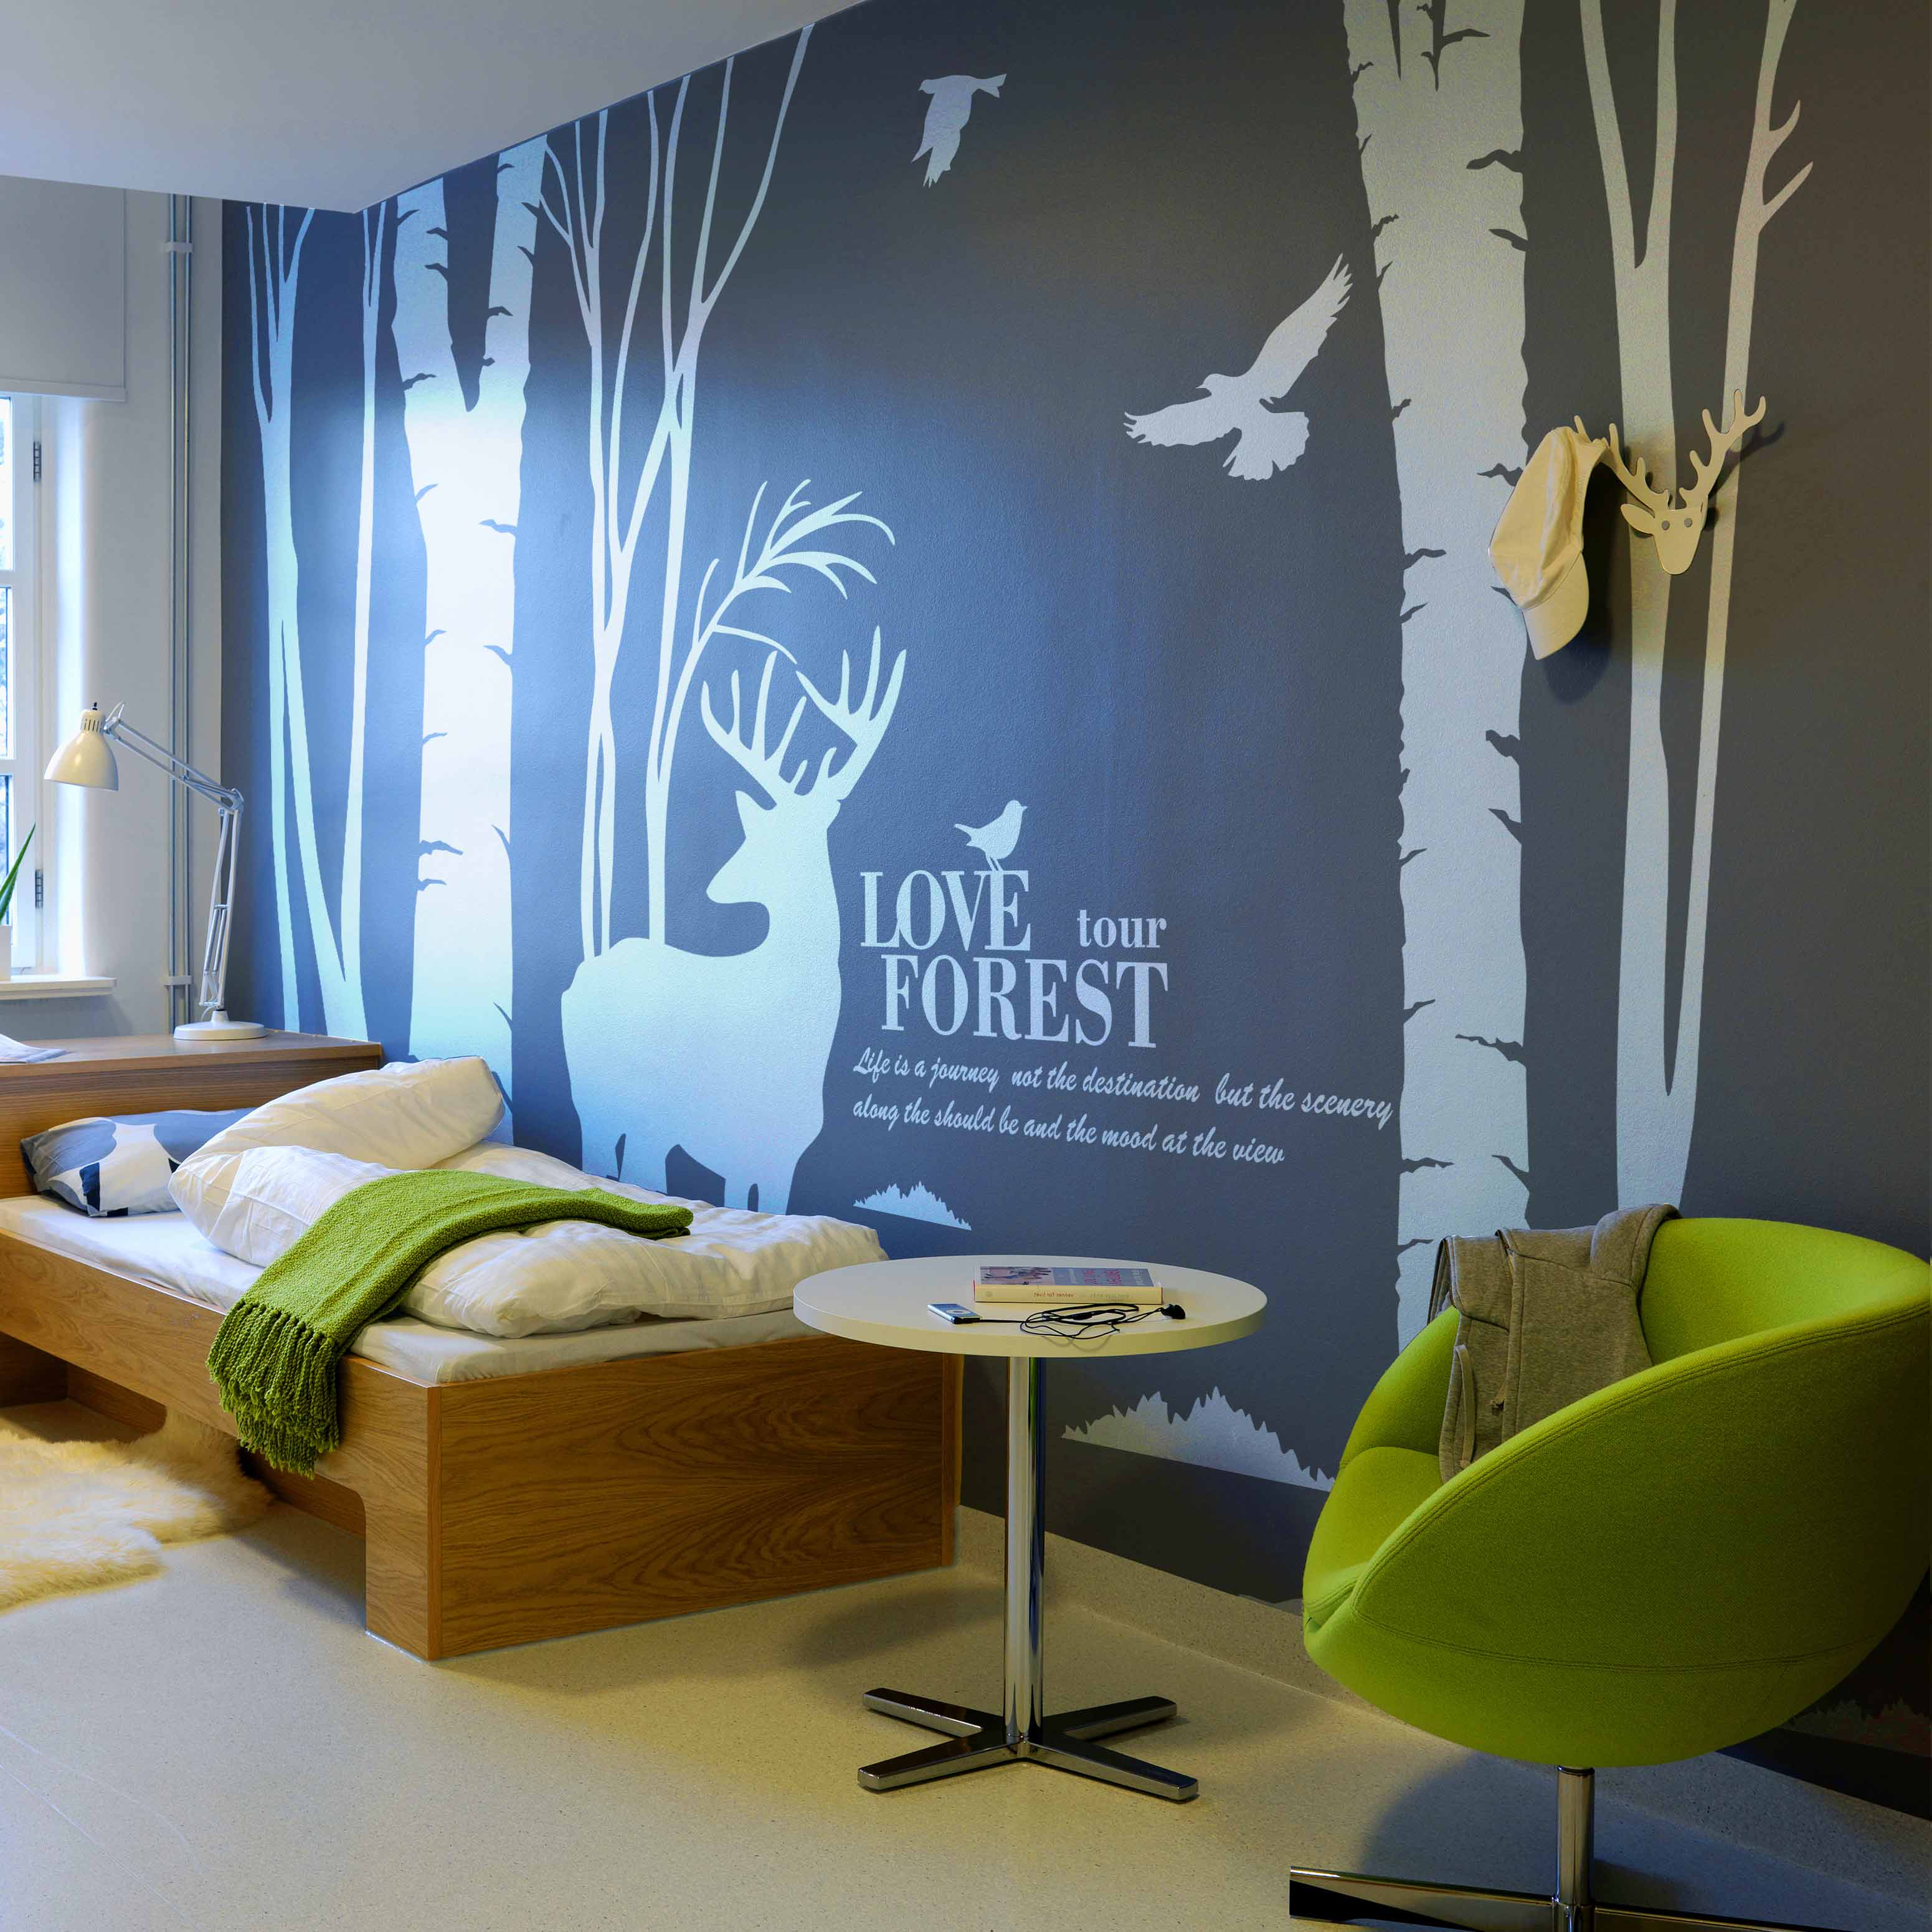 Landscape Large Buck Birds Tree Forest Wall Stickers, Buck Wall Decals Home Decor Decoration Wts010